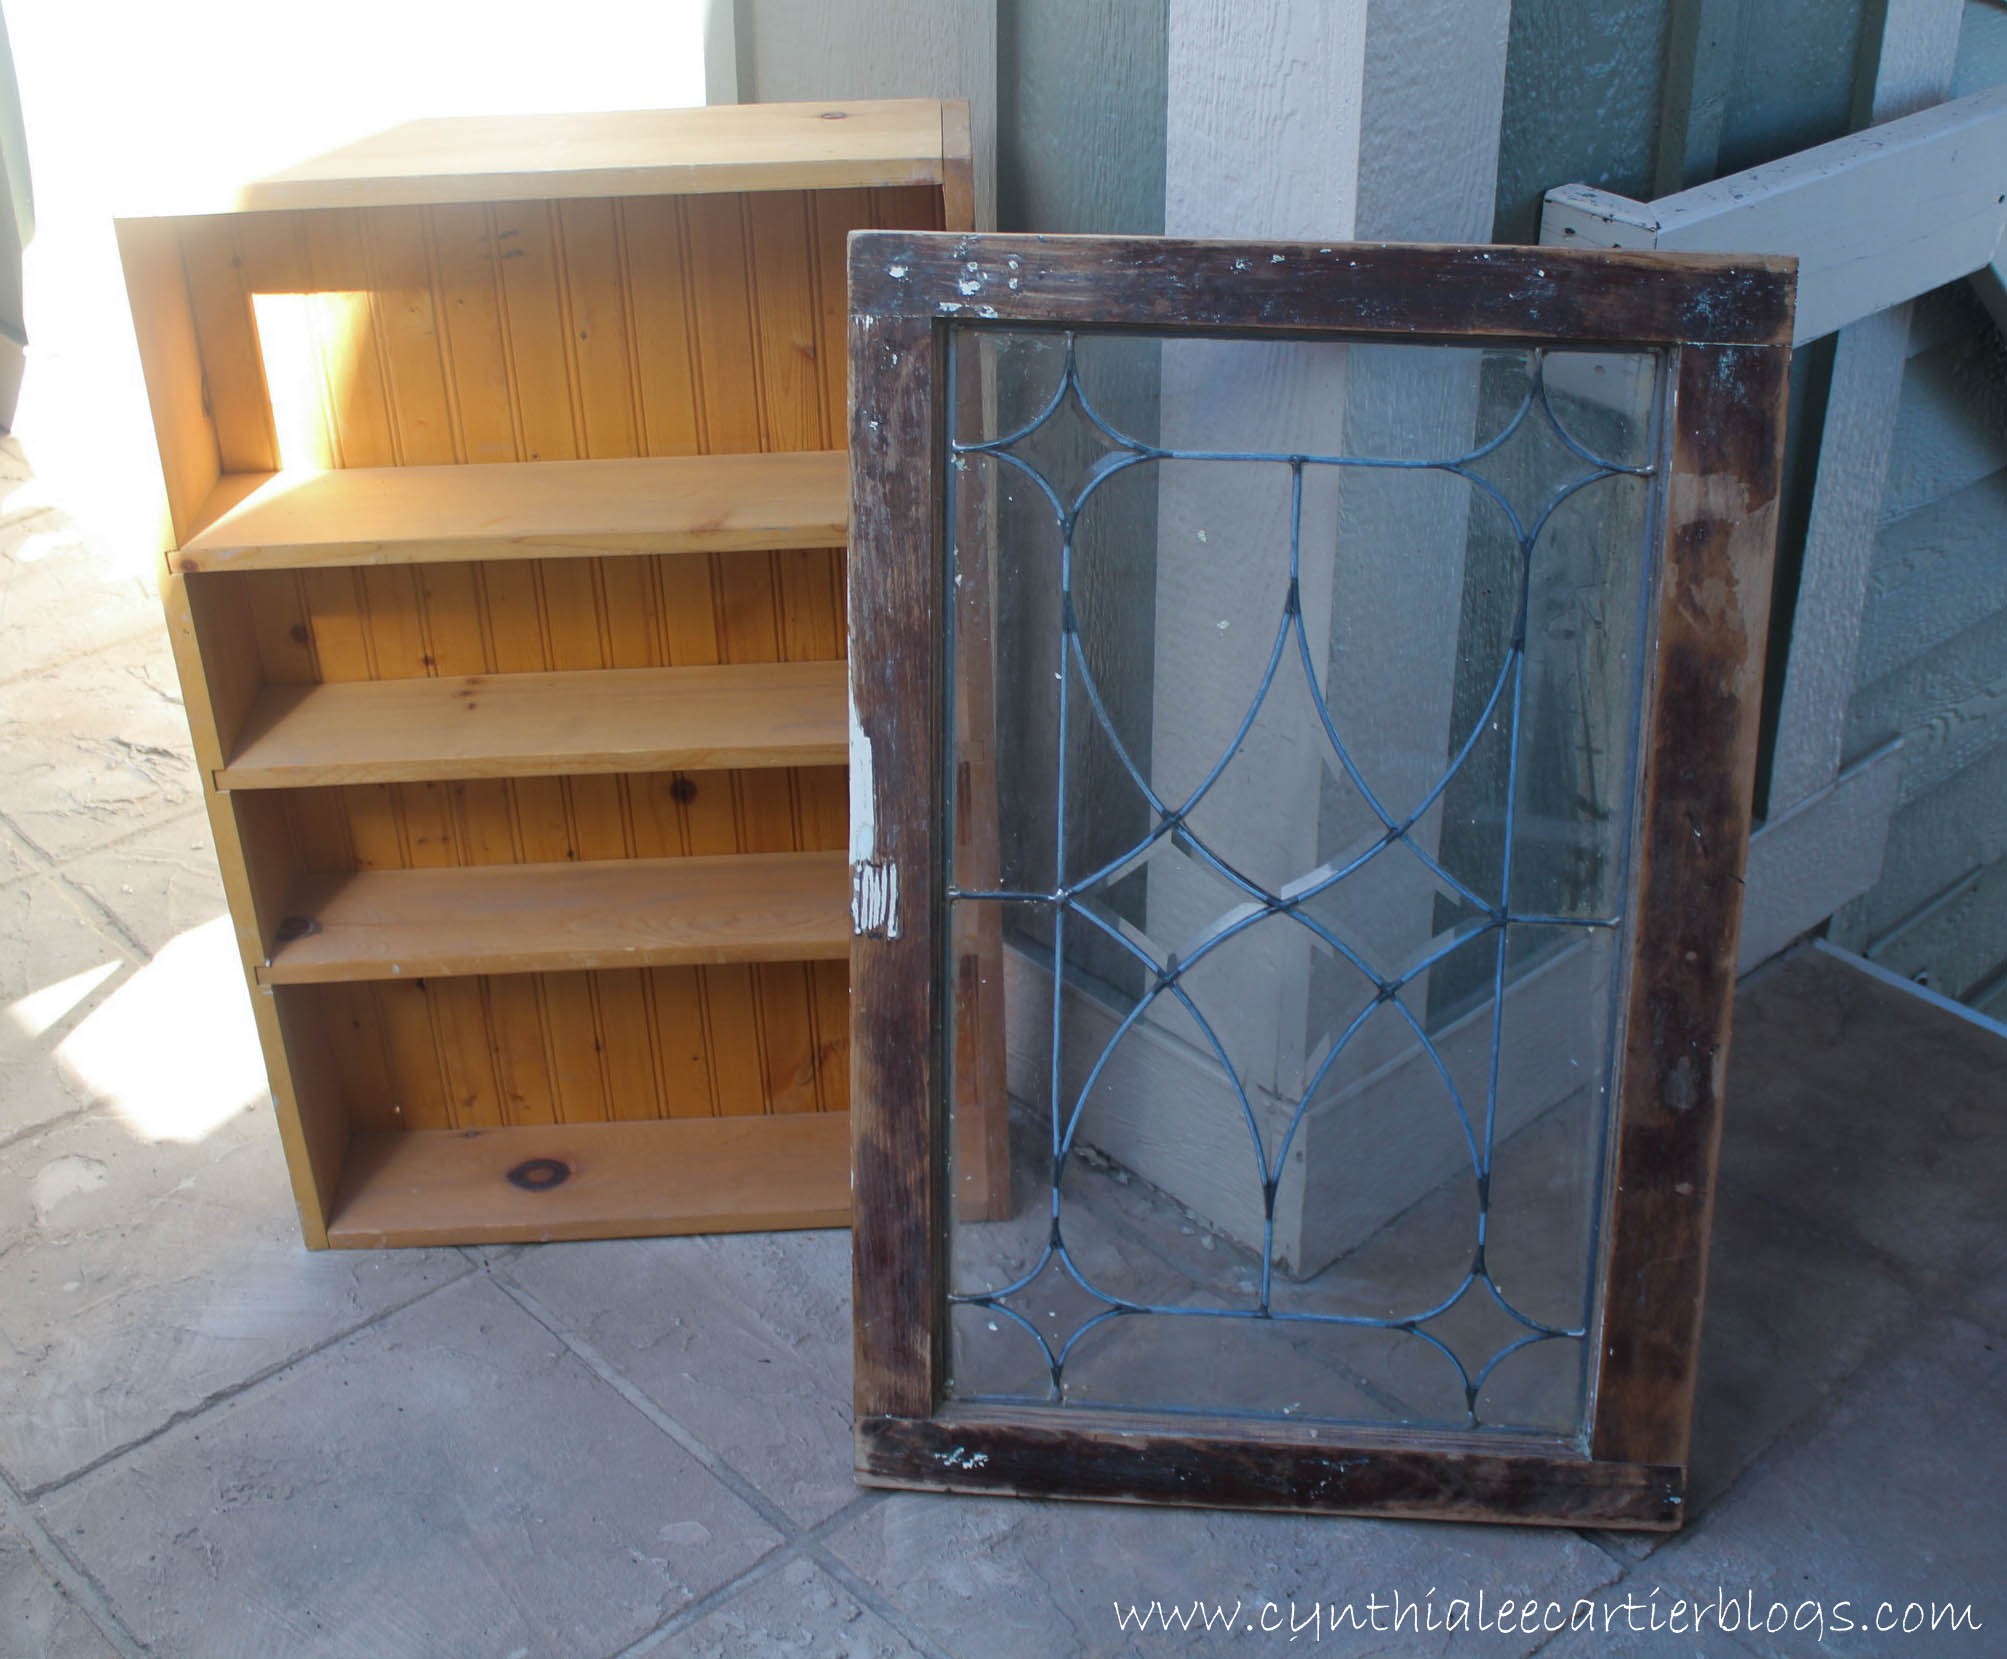 This Is A Picture Of A Cabinet Base And An Old Window Ready To Assemble To